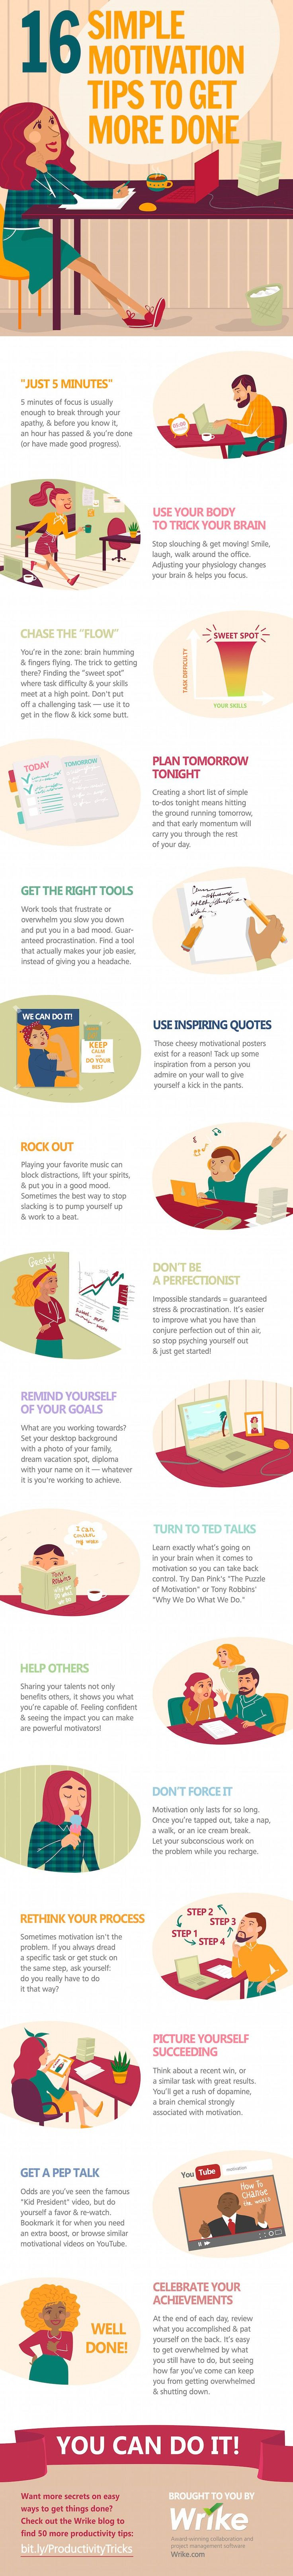 16 Simple Motivation Tips to Get More Done  [by Wrike -- via Tipsographic] #tipsographic